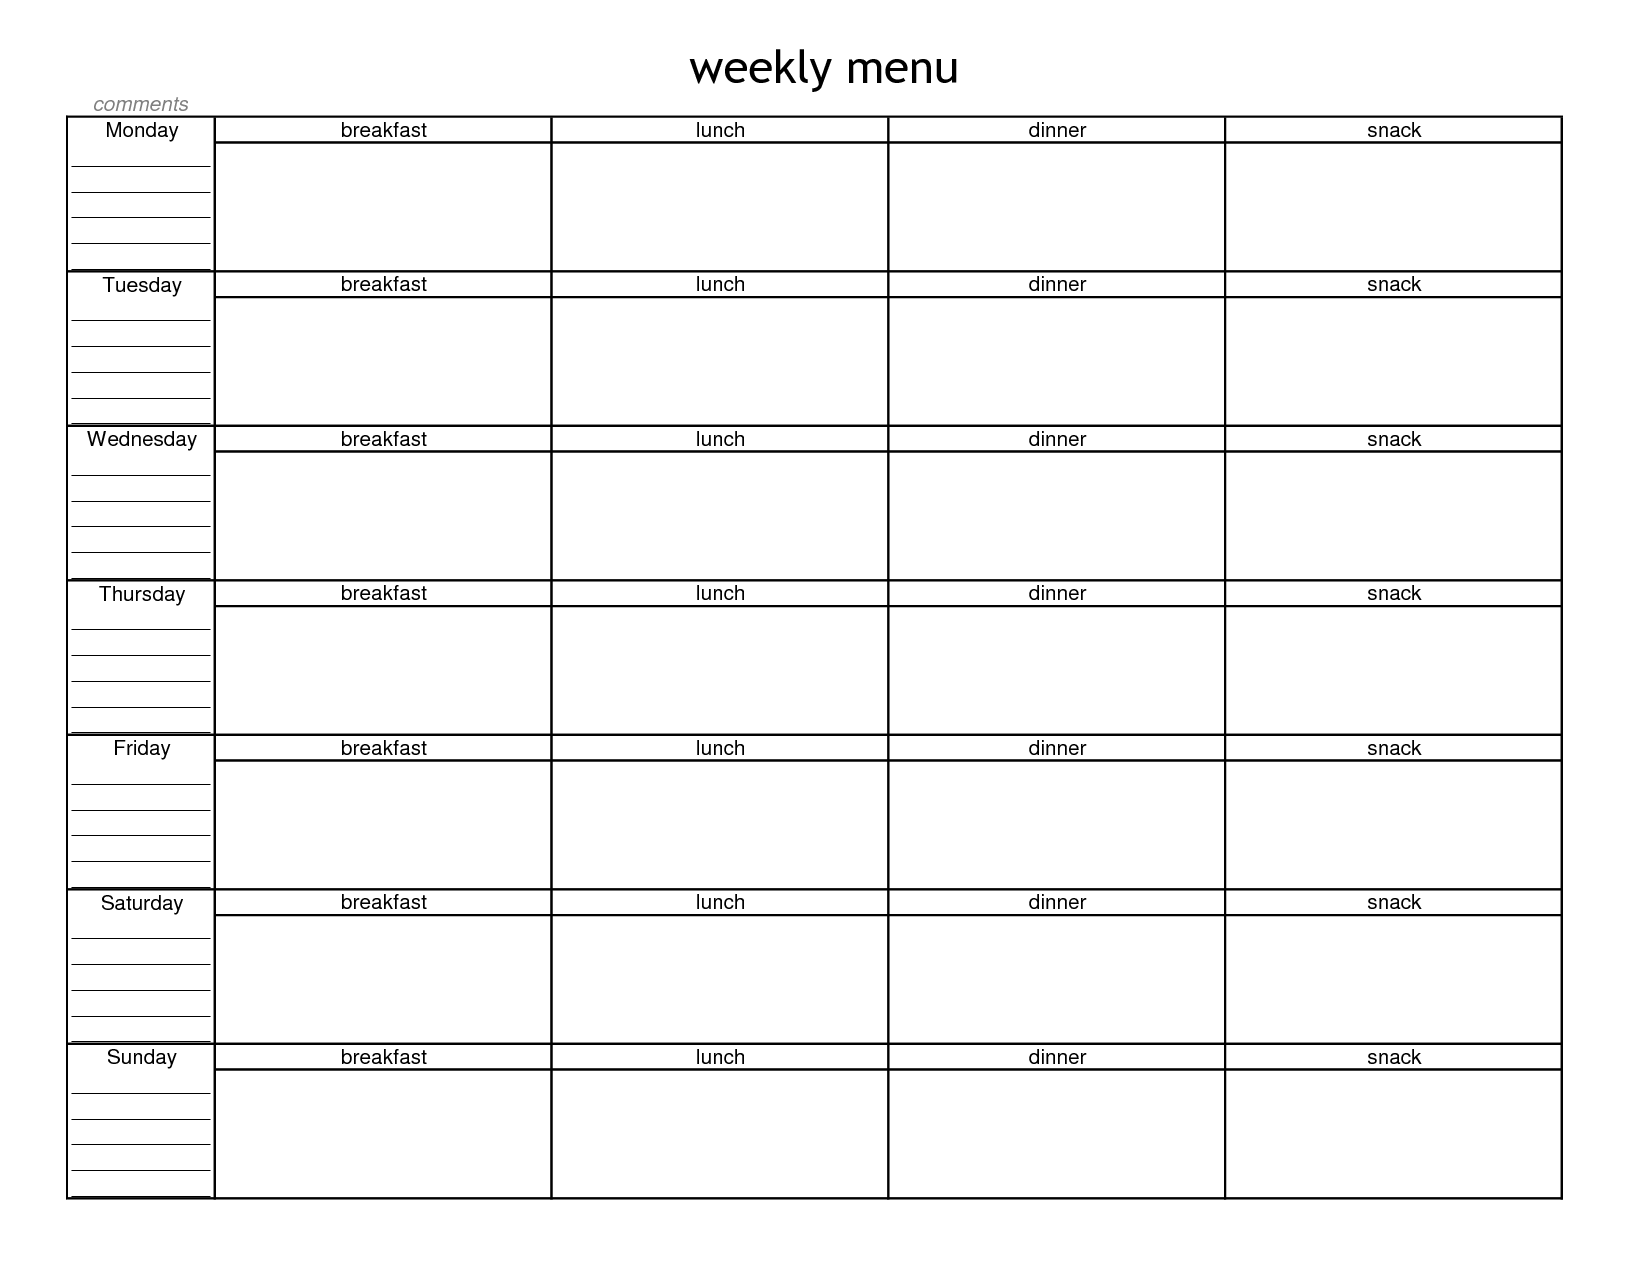 Blank Weekly Menu Planner Template | Menu Planning | Pinterest ...